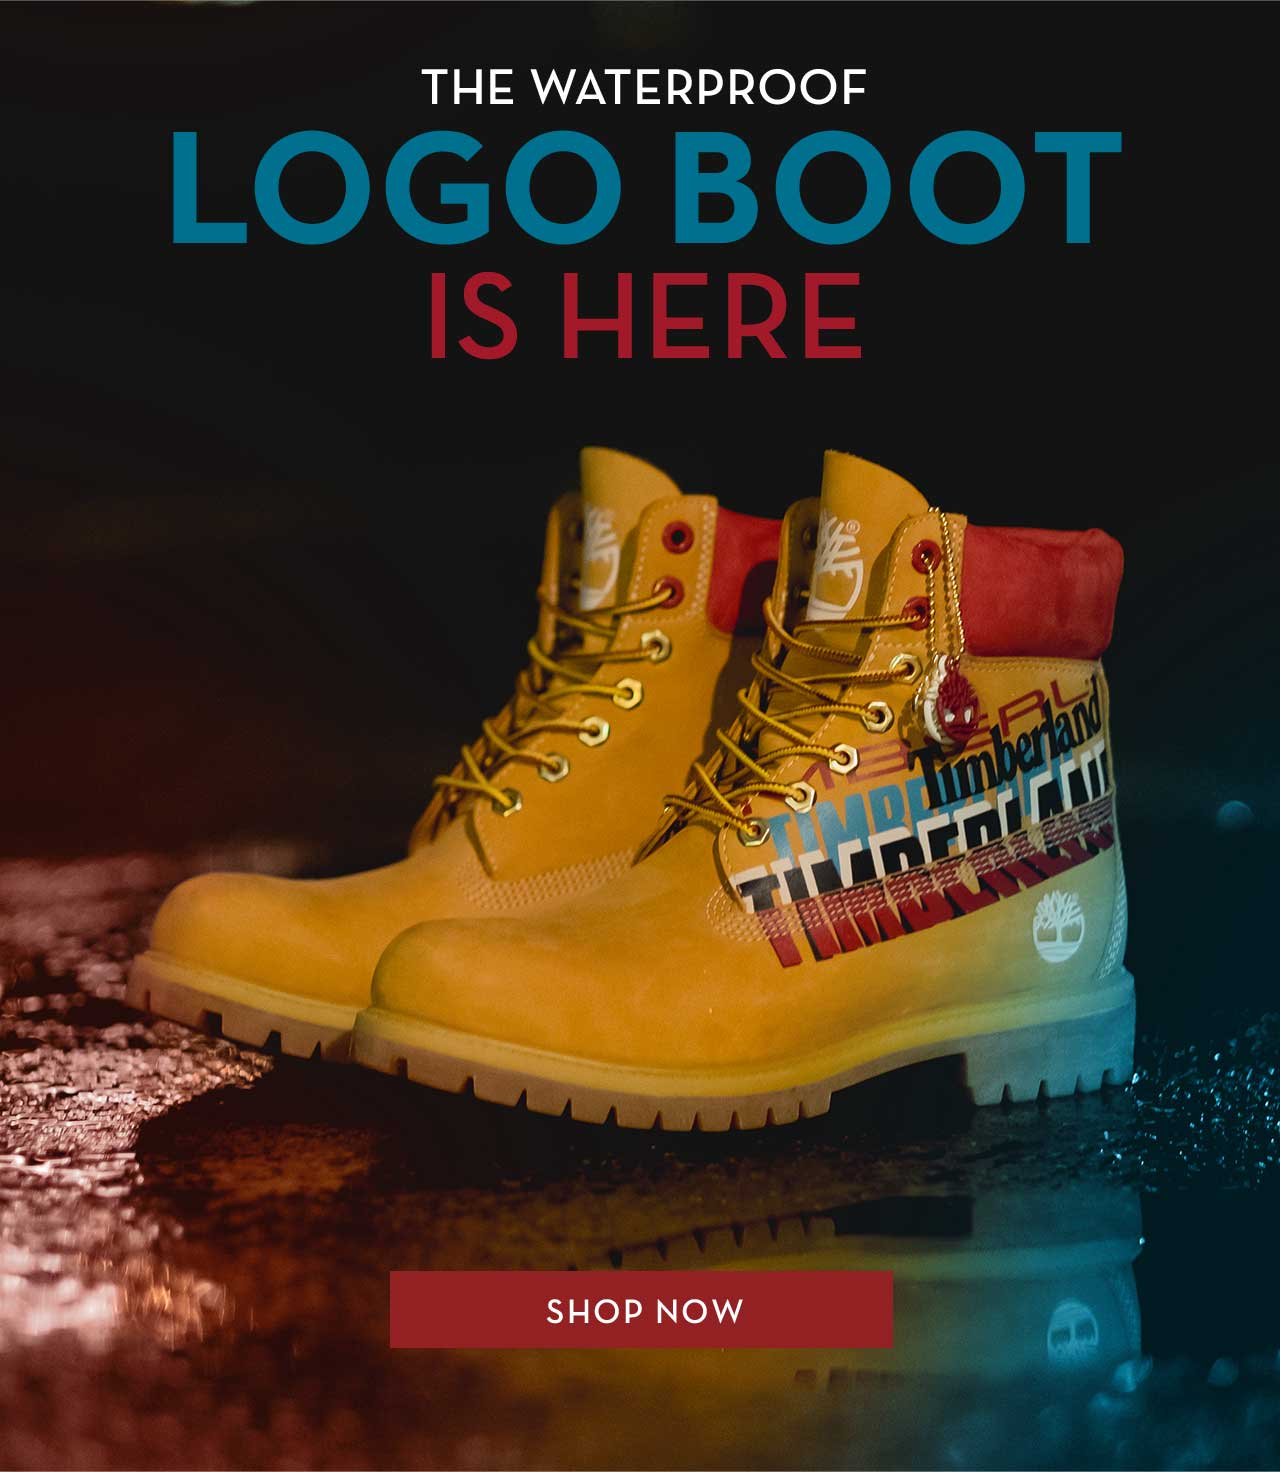 THE WATERPROOF LOGO BOOT IS HERE  SHOP NOW